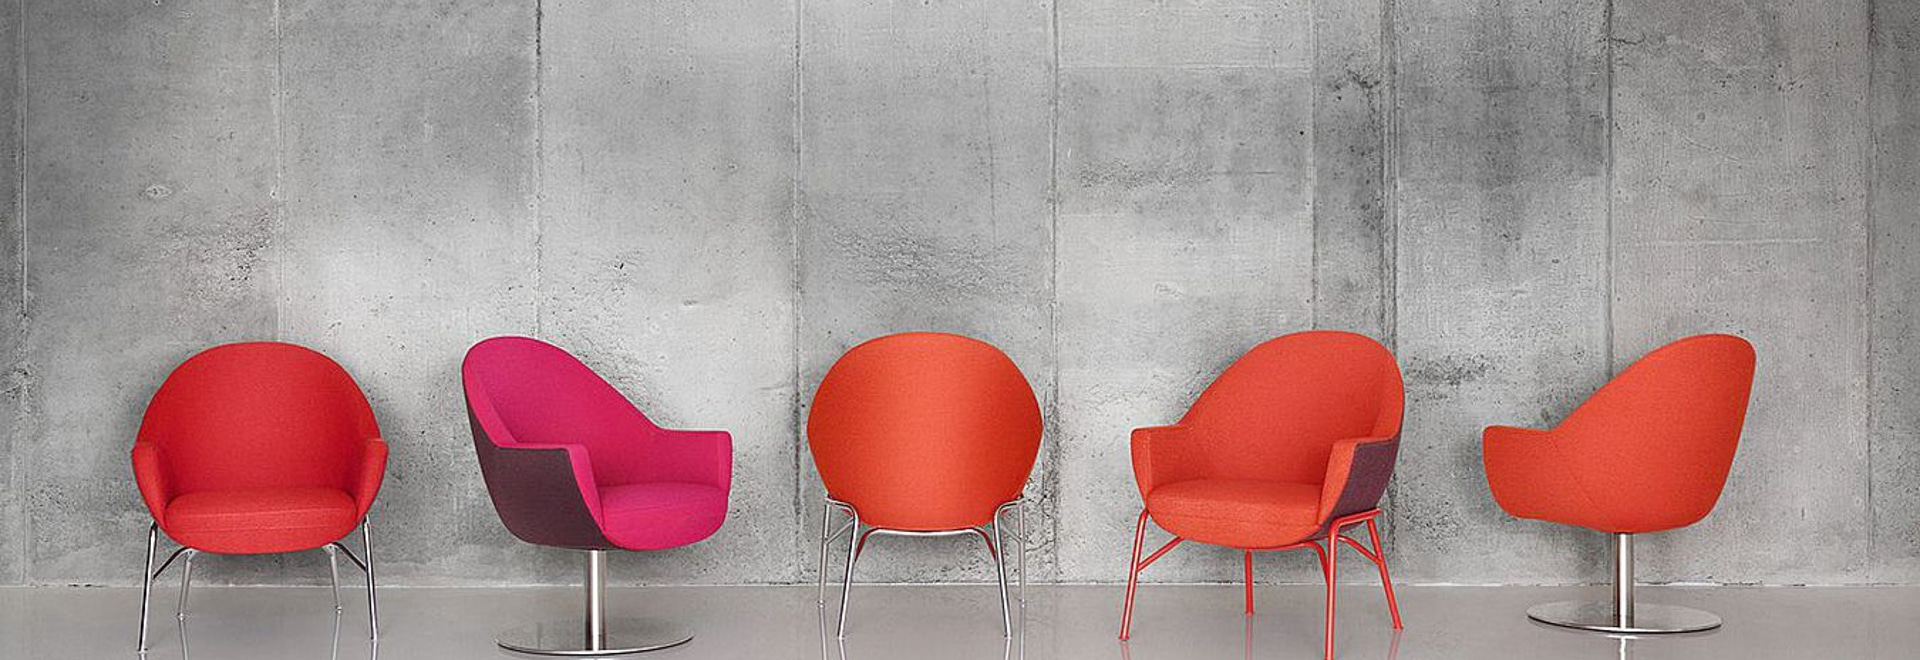 S 831 by Emilia Becker for Thonet